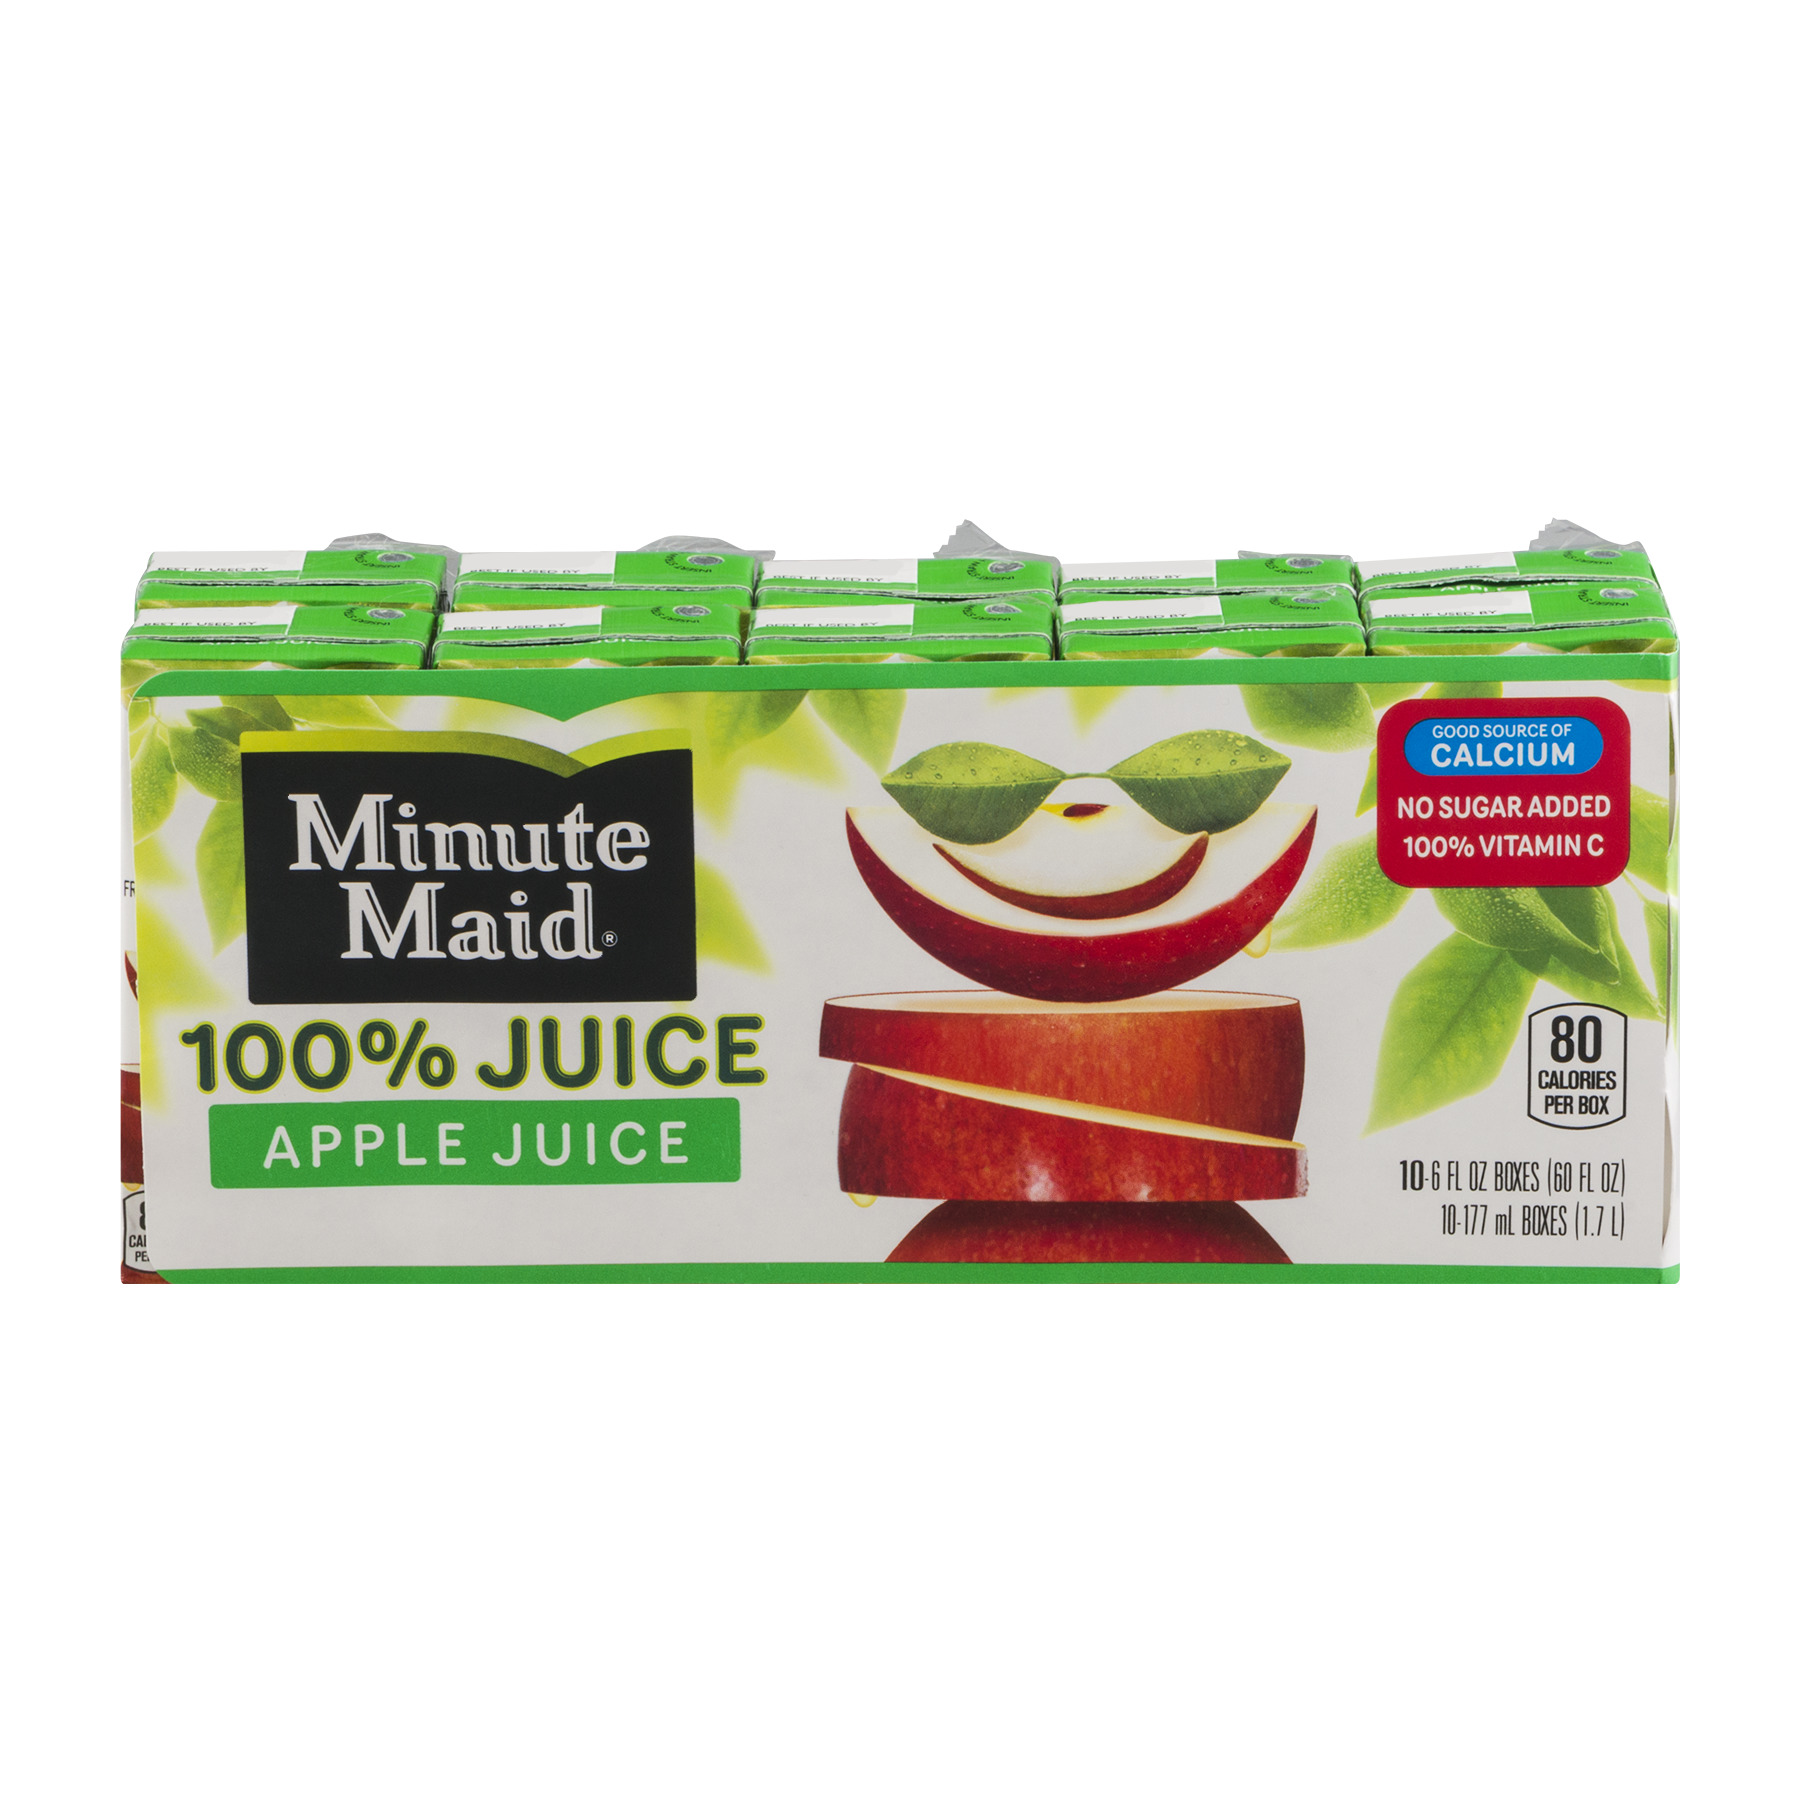 (4 Pack) Minute Maid 100% Juice, Apple, 6 Fl Oz, 10 Count